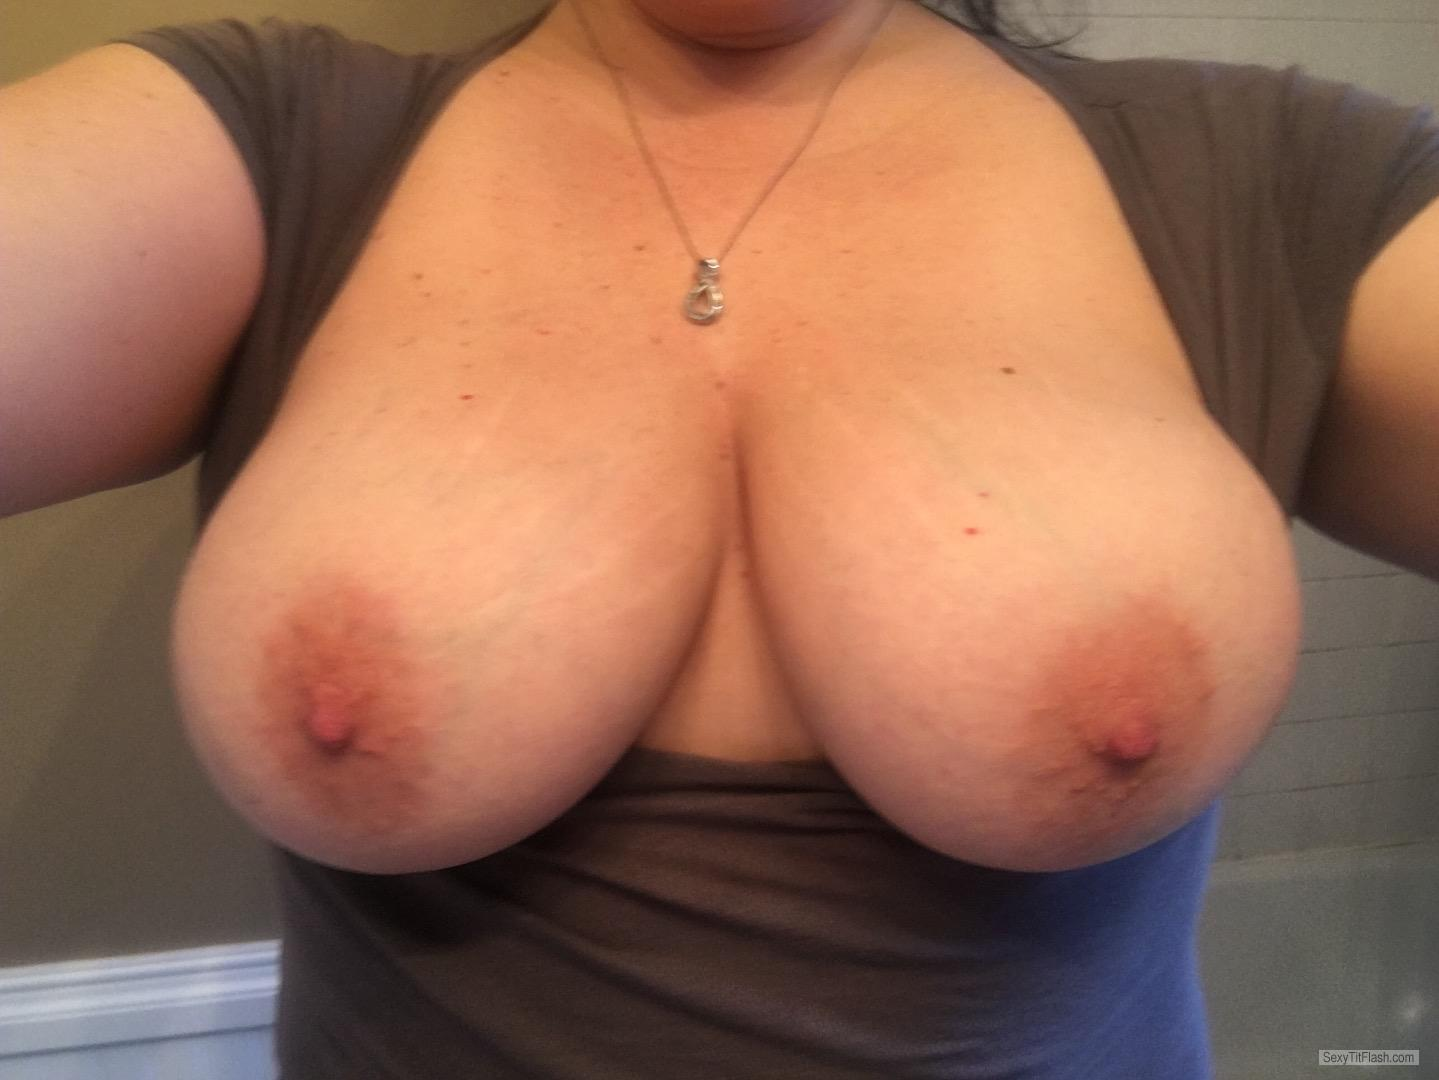 Big Tits Of My Wife Topless Selfie by Shan